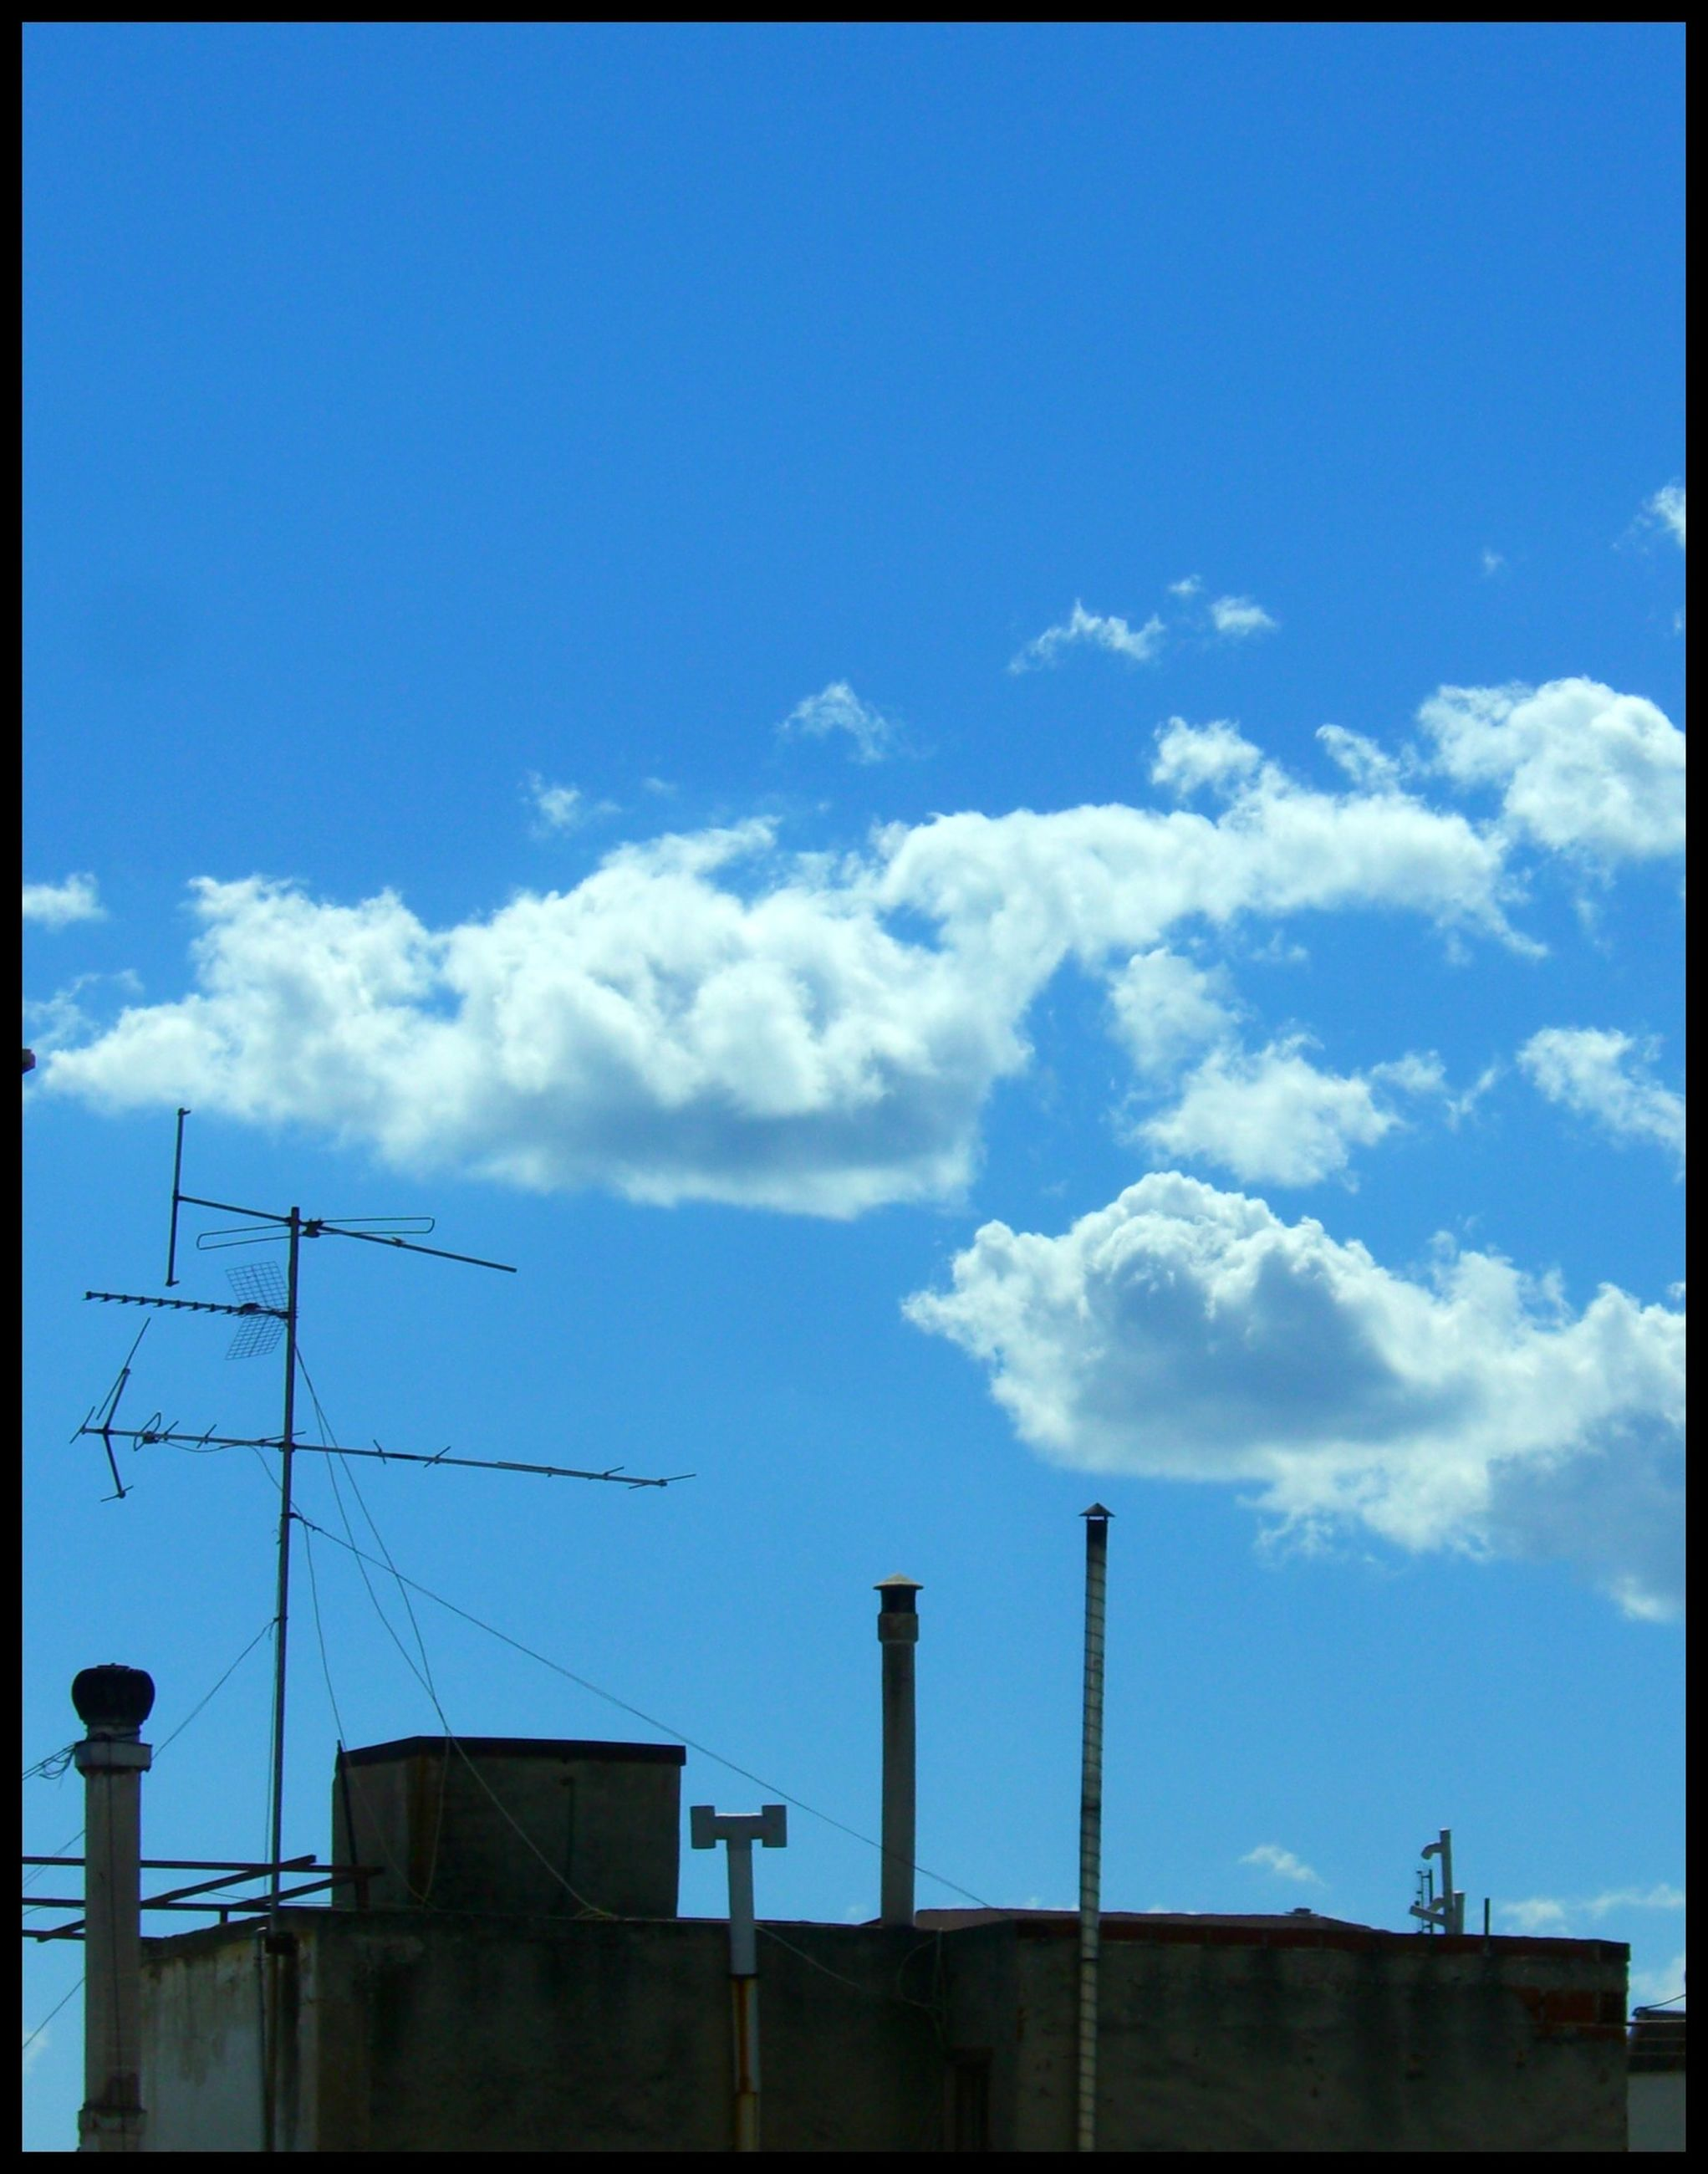 sky, low angle view, blue, built structure, building exterior, architecture, cloud, transfer print, cloud - sky, power line, auto post production filter, silhouette, electricity pylon, outdoors, industry, street light, no people, copy space, day, pole